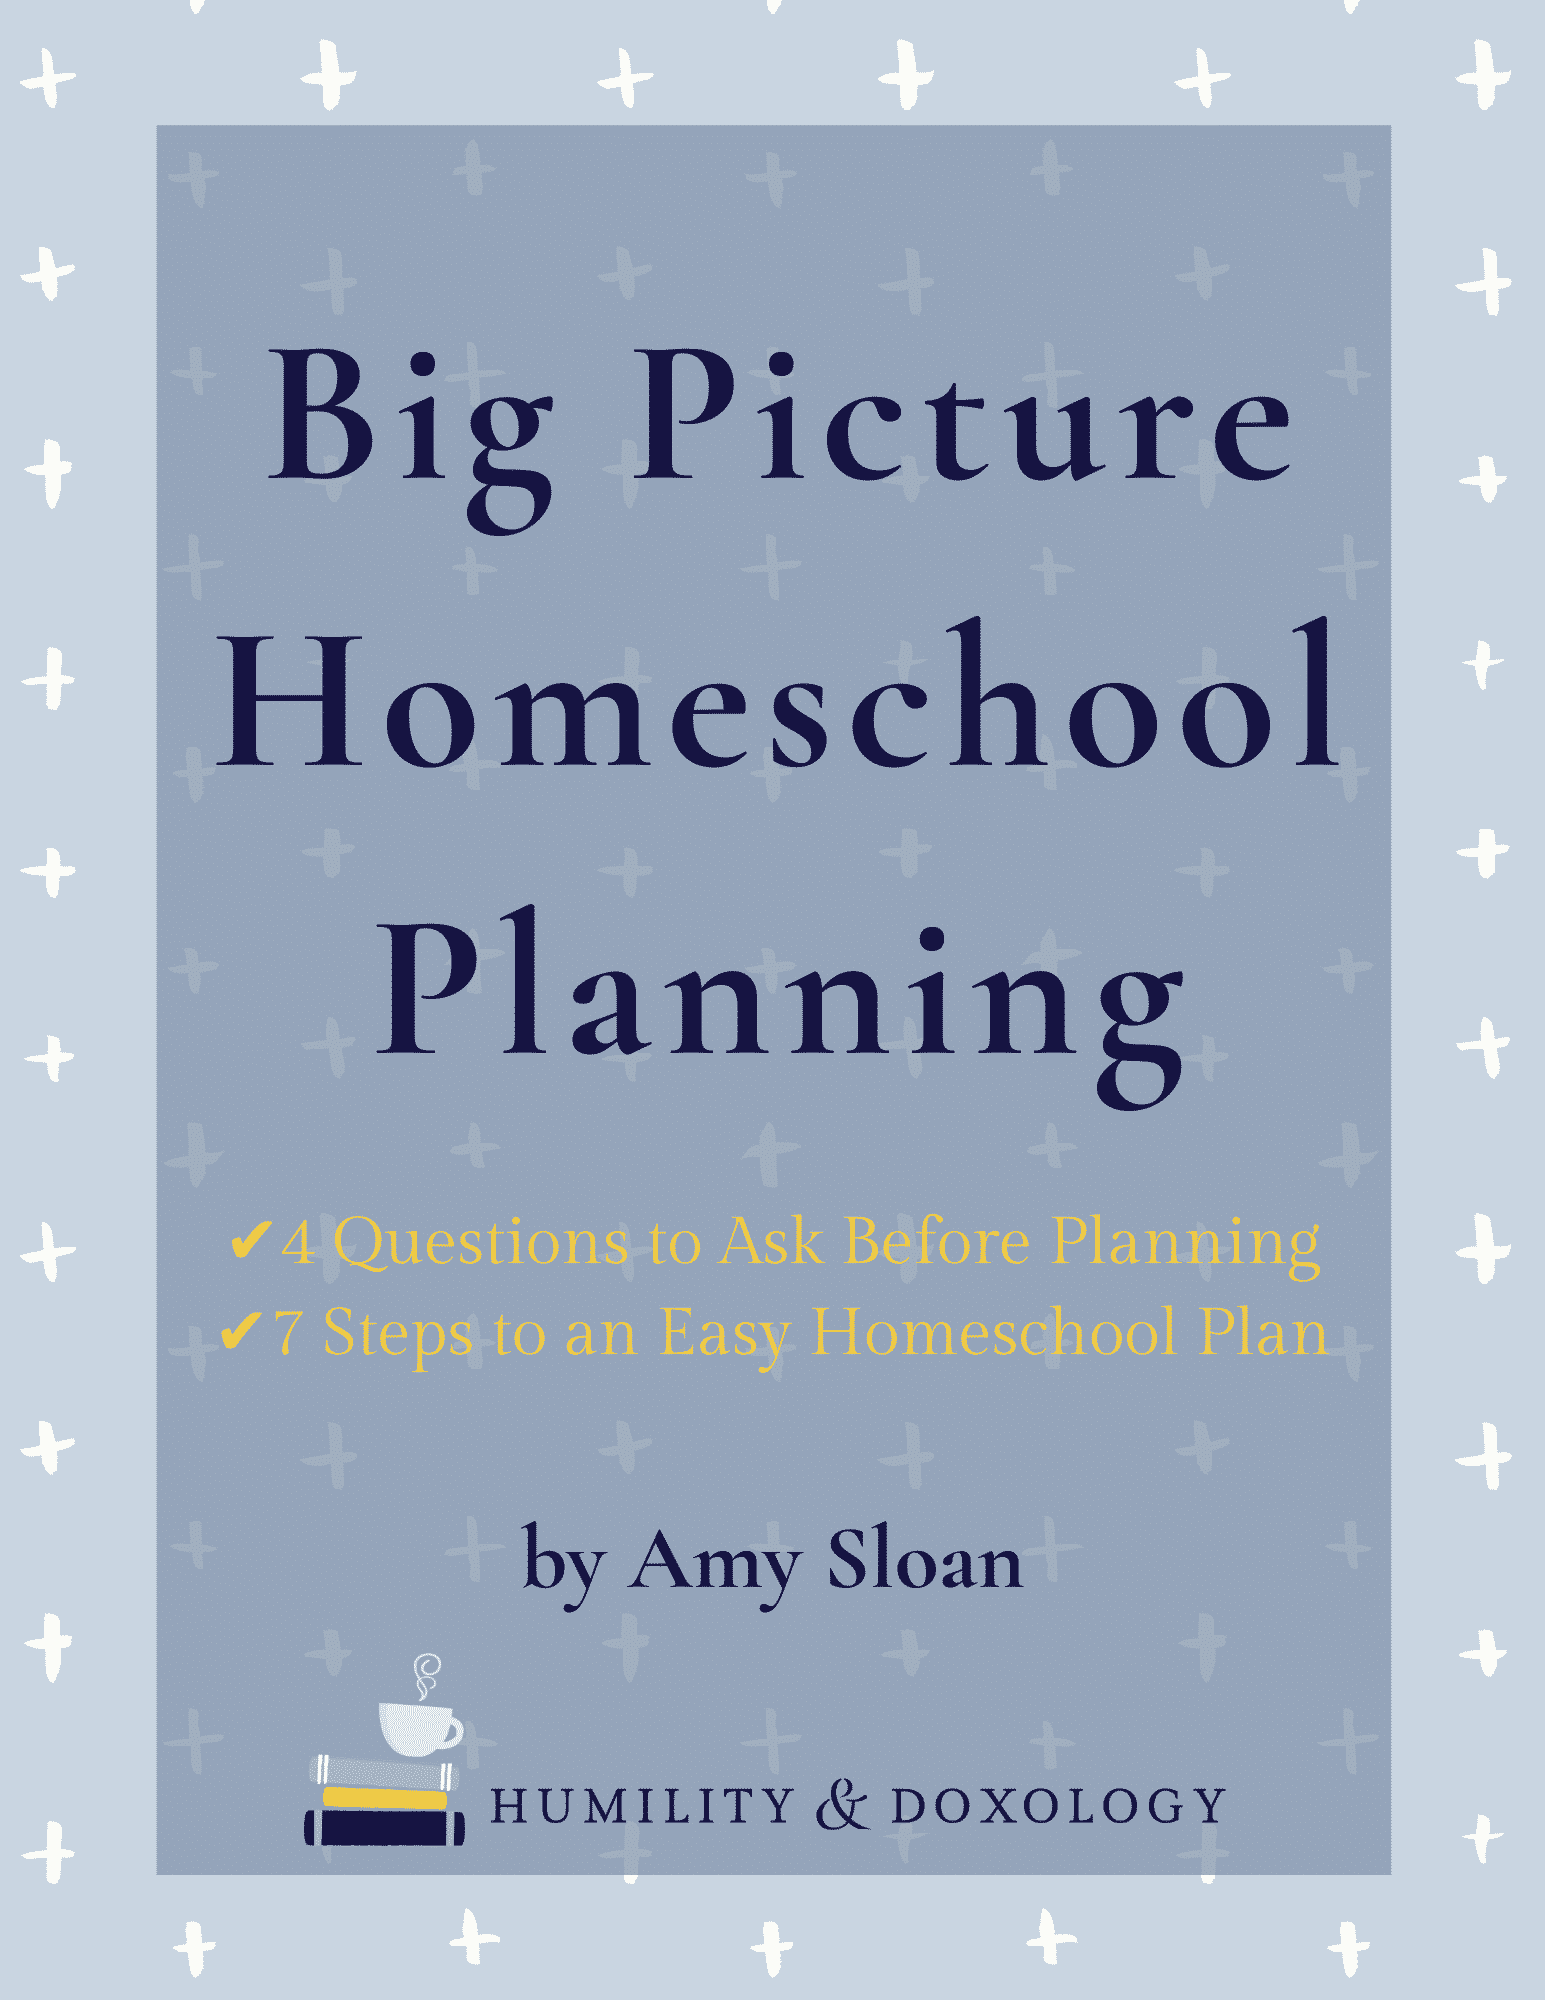 Big Picture Homeschool Planning Guide